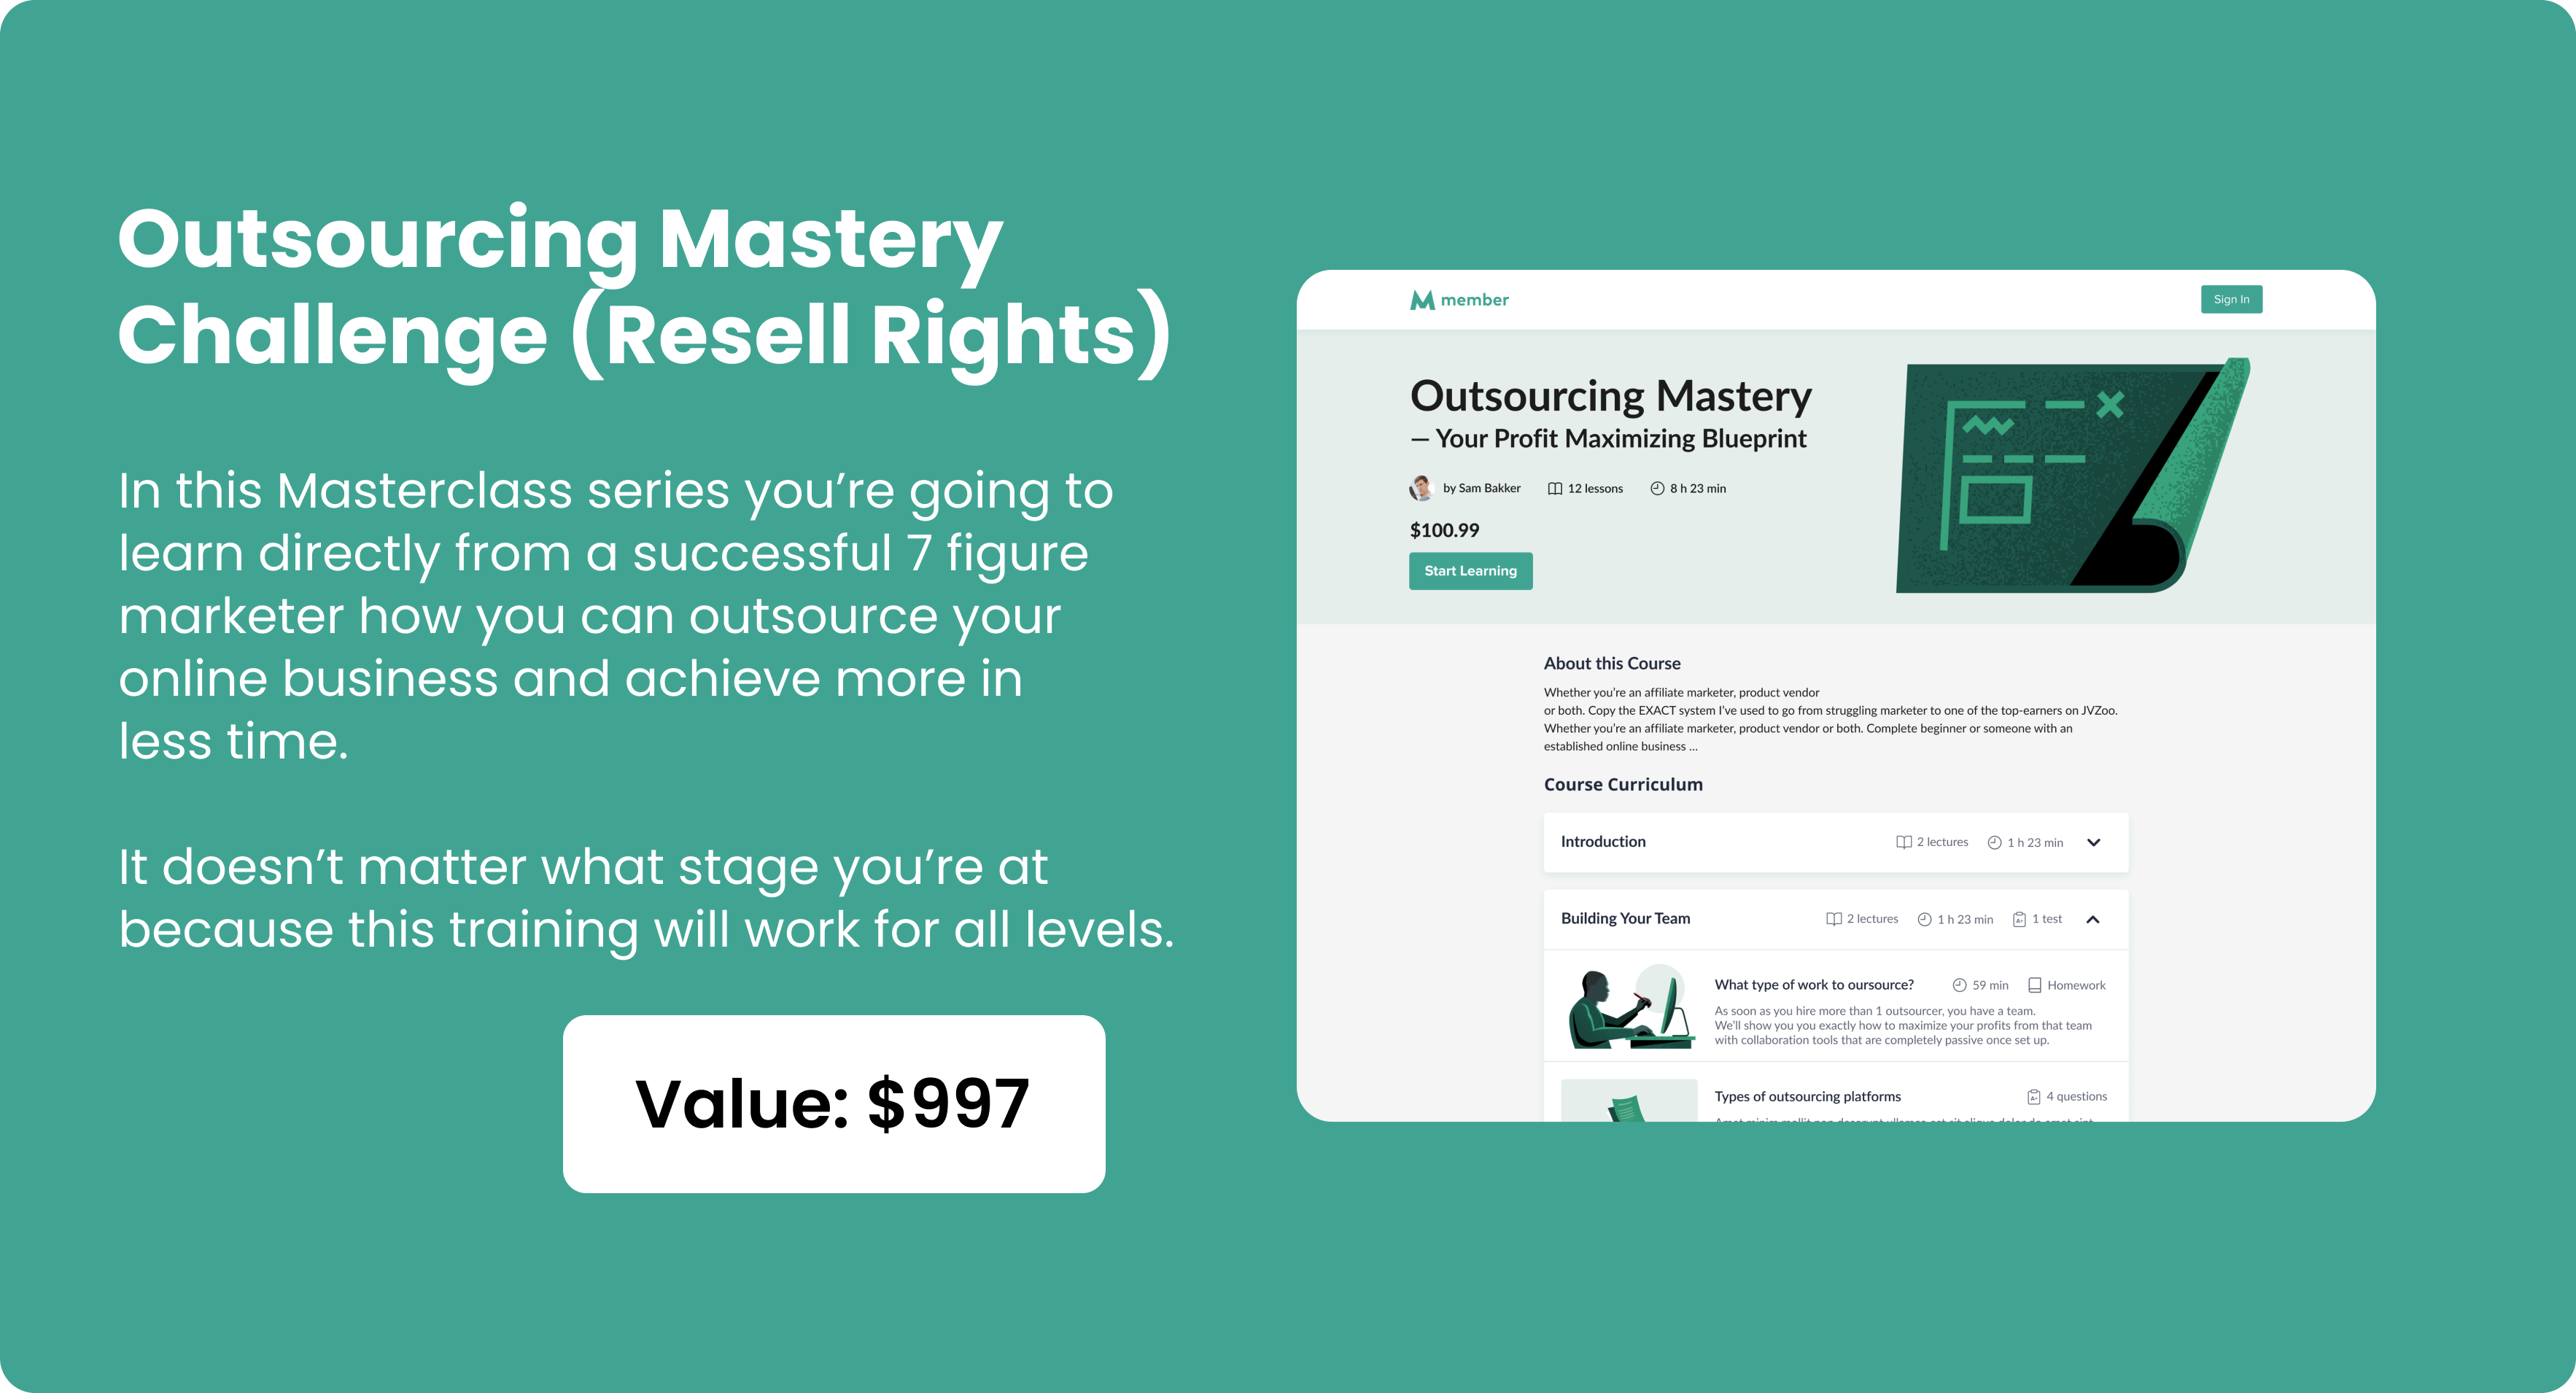 Outsourcing Mastery Challenge